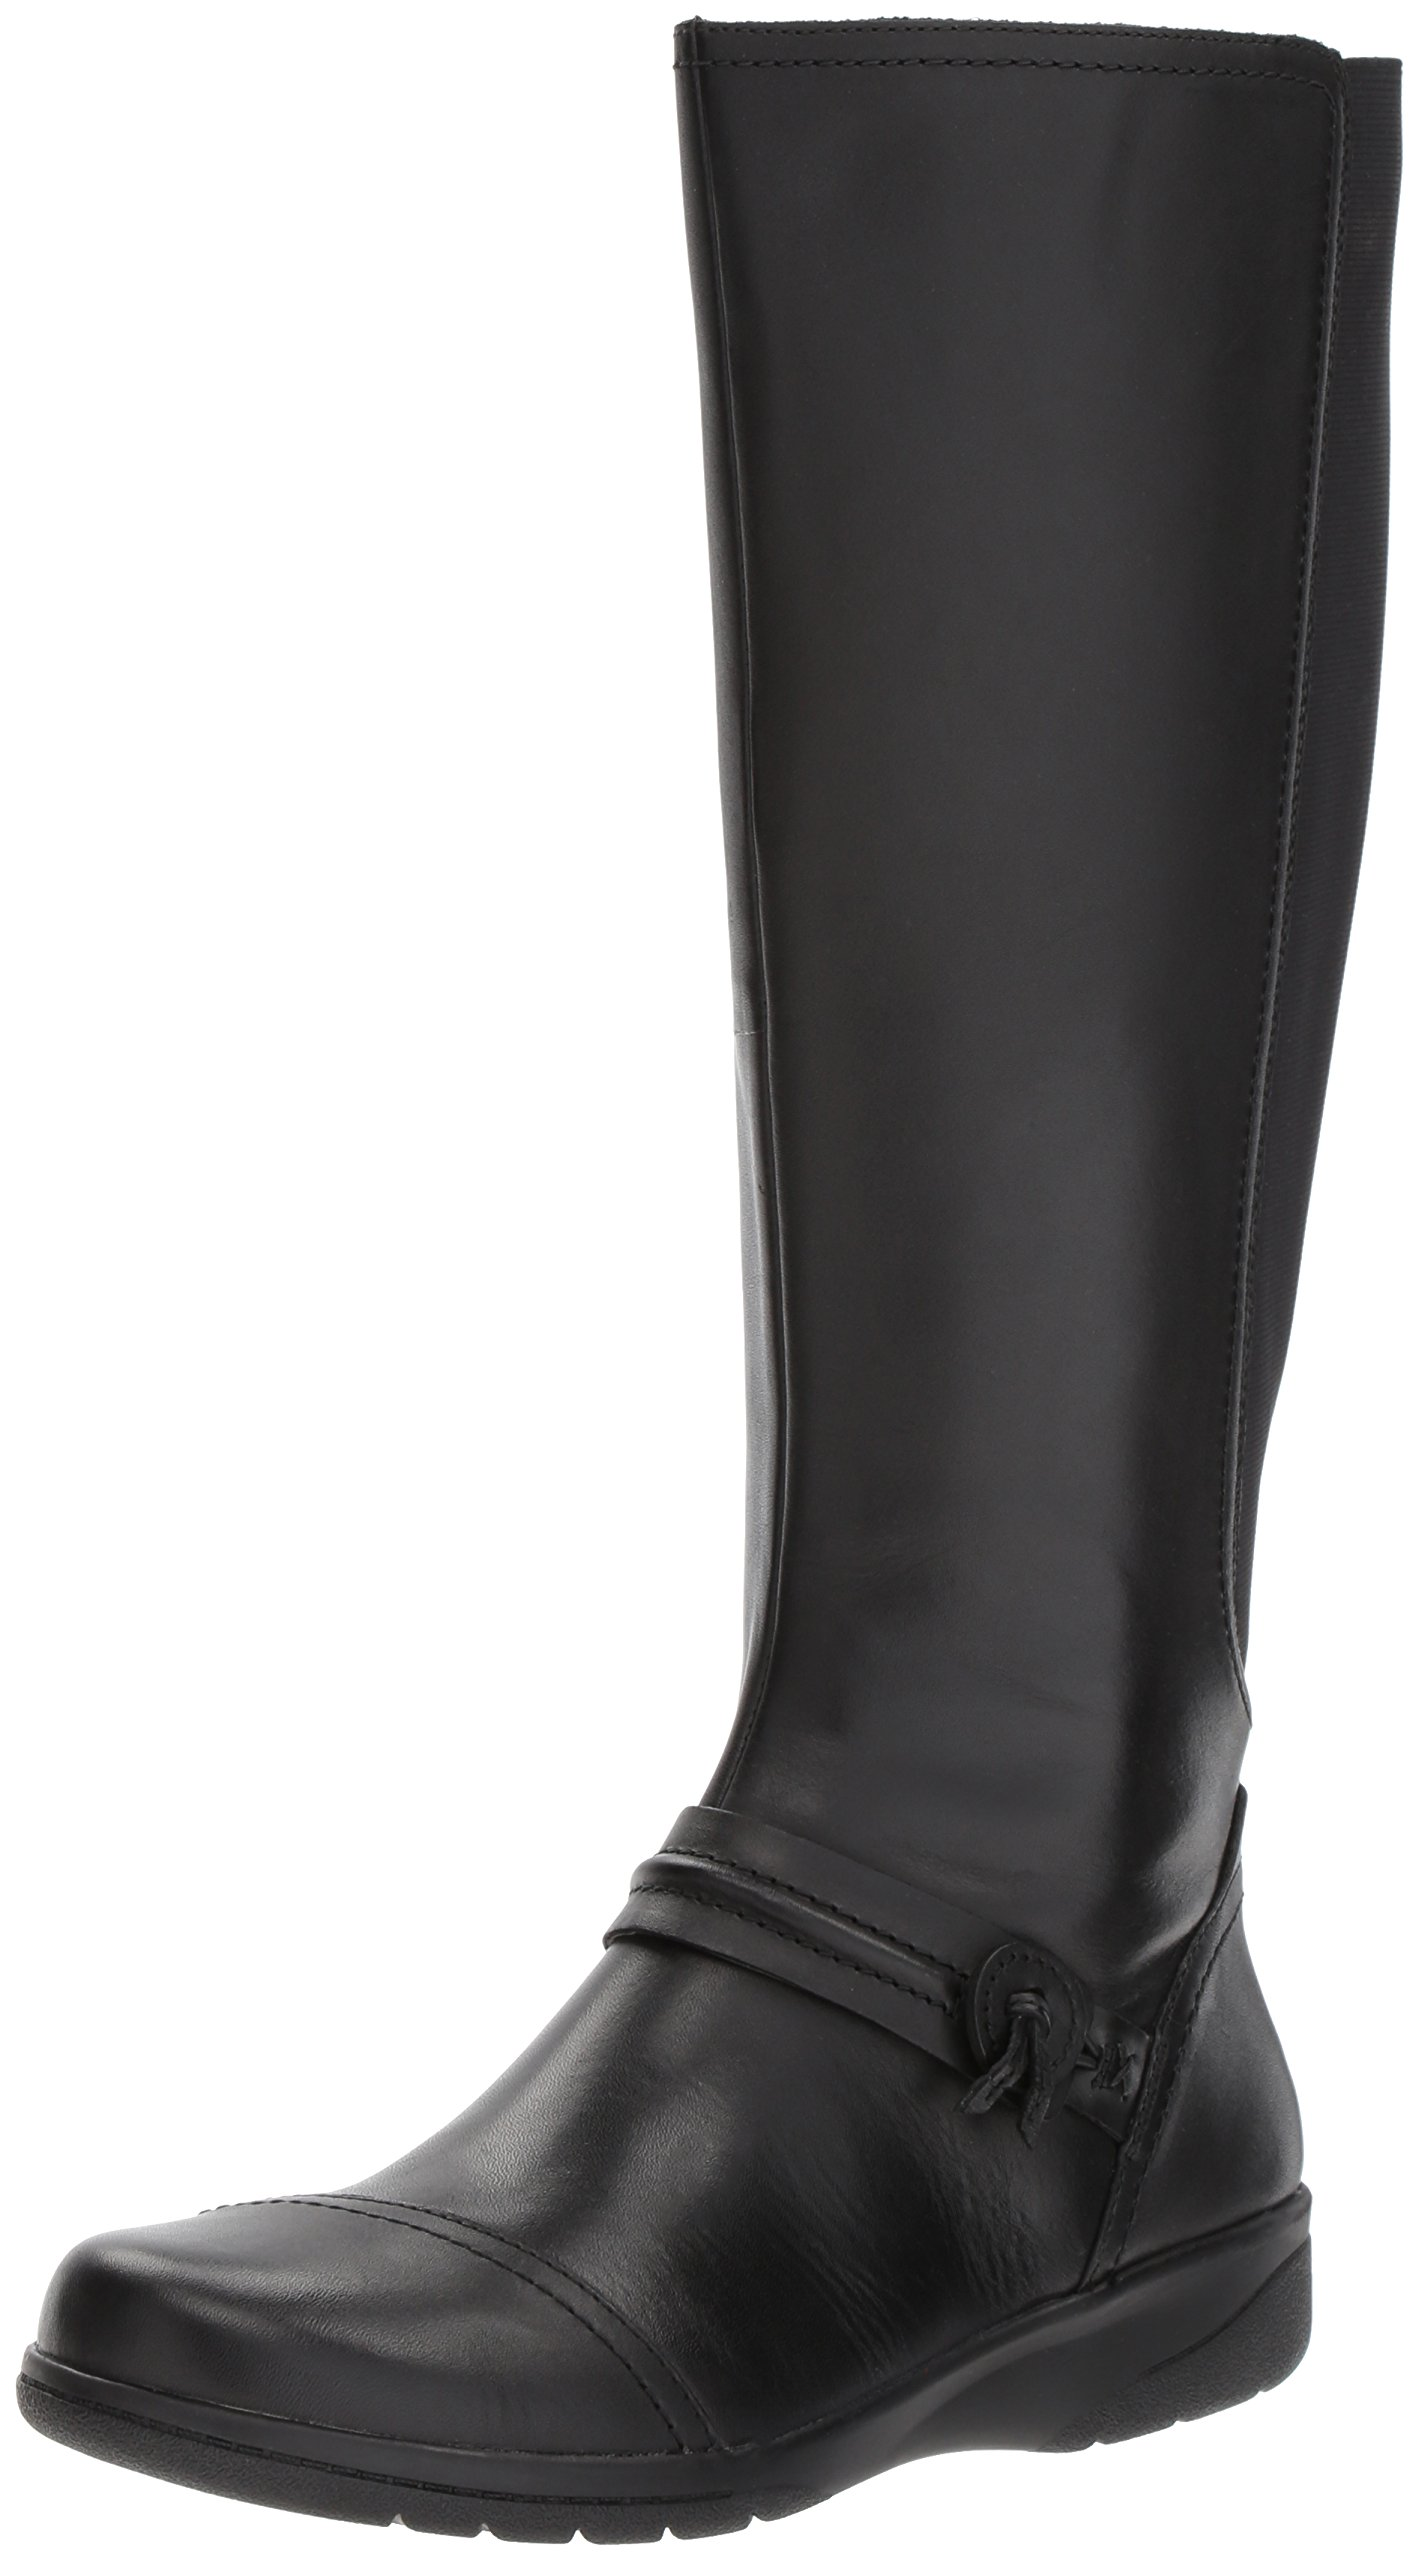 CLARKS Women's Cheyn Whisk Riding Boot, Black, 6 M US